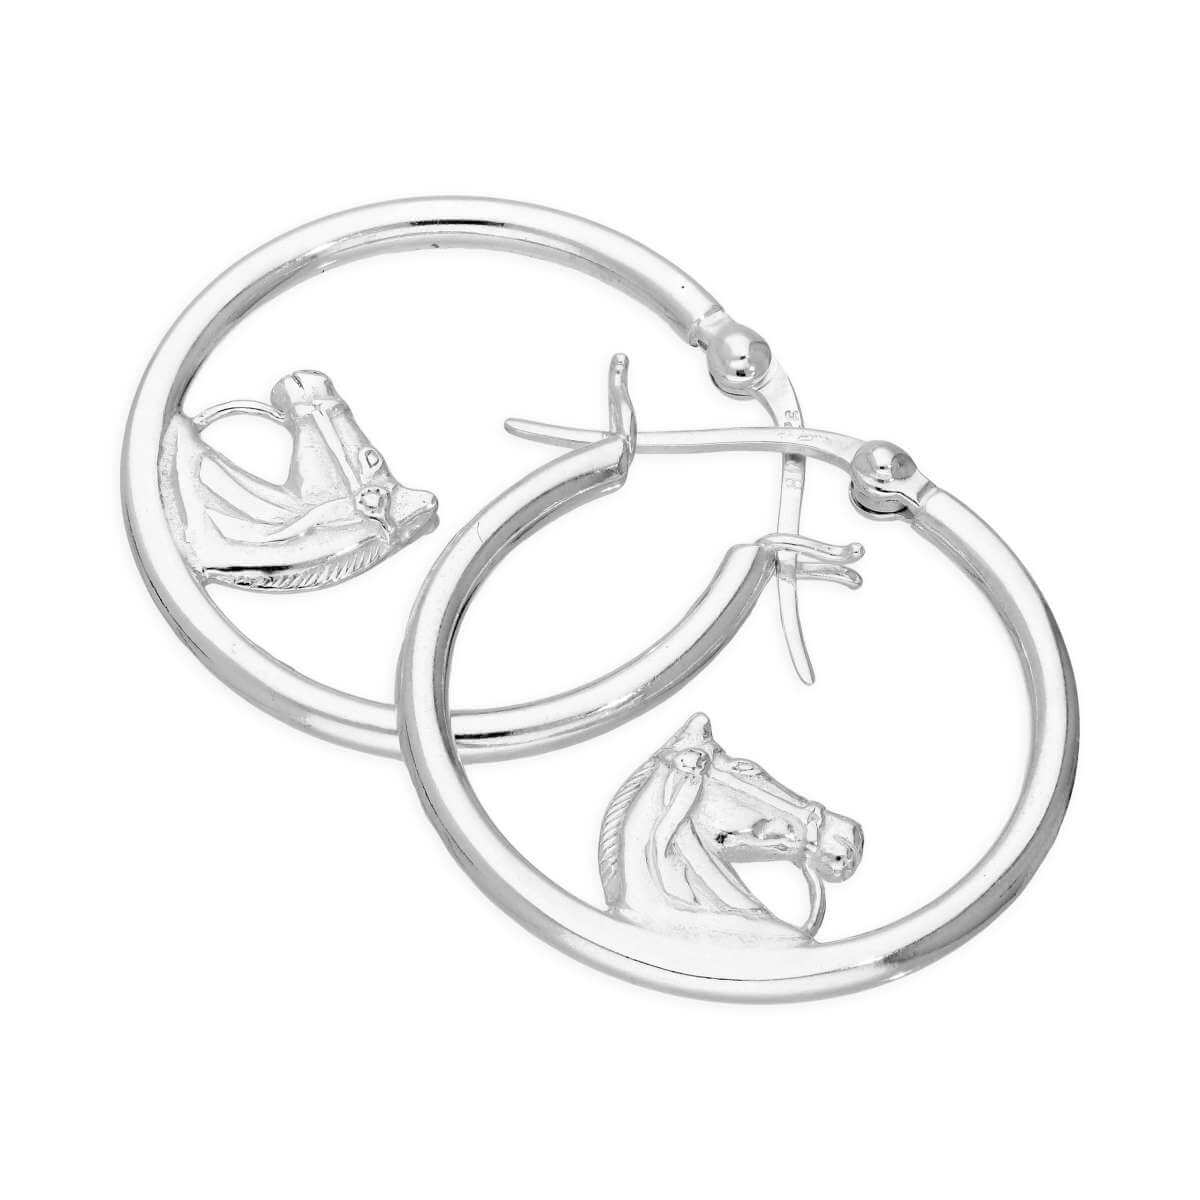 Sterling Silver 25mm Horse Hoop Earrings